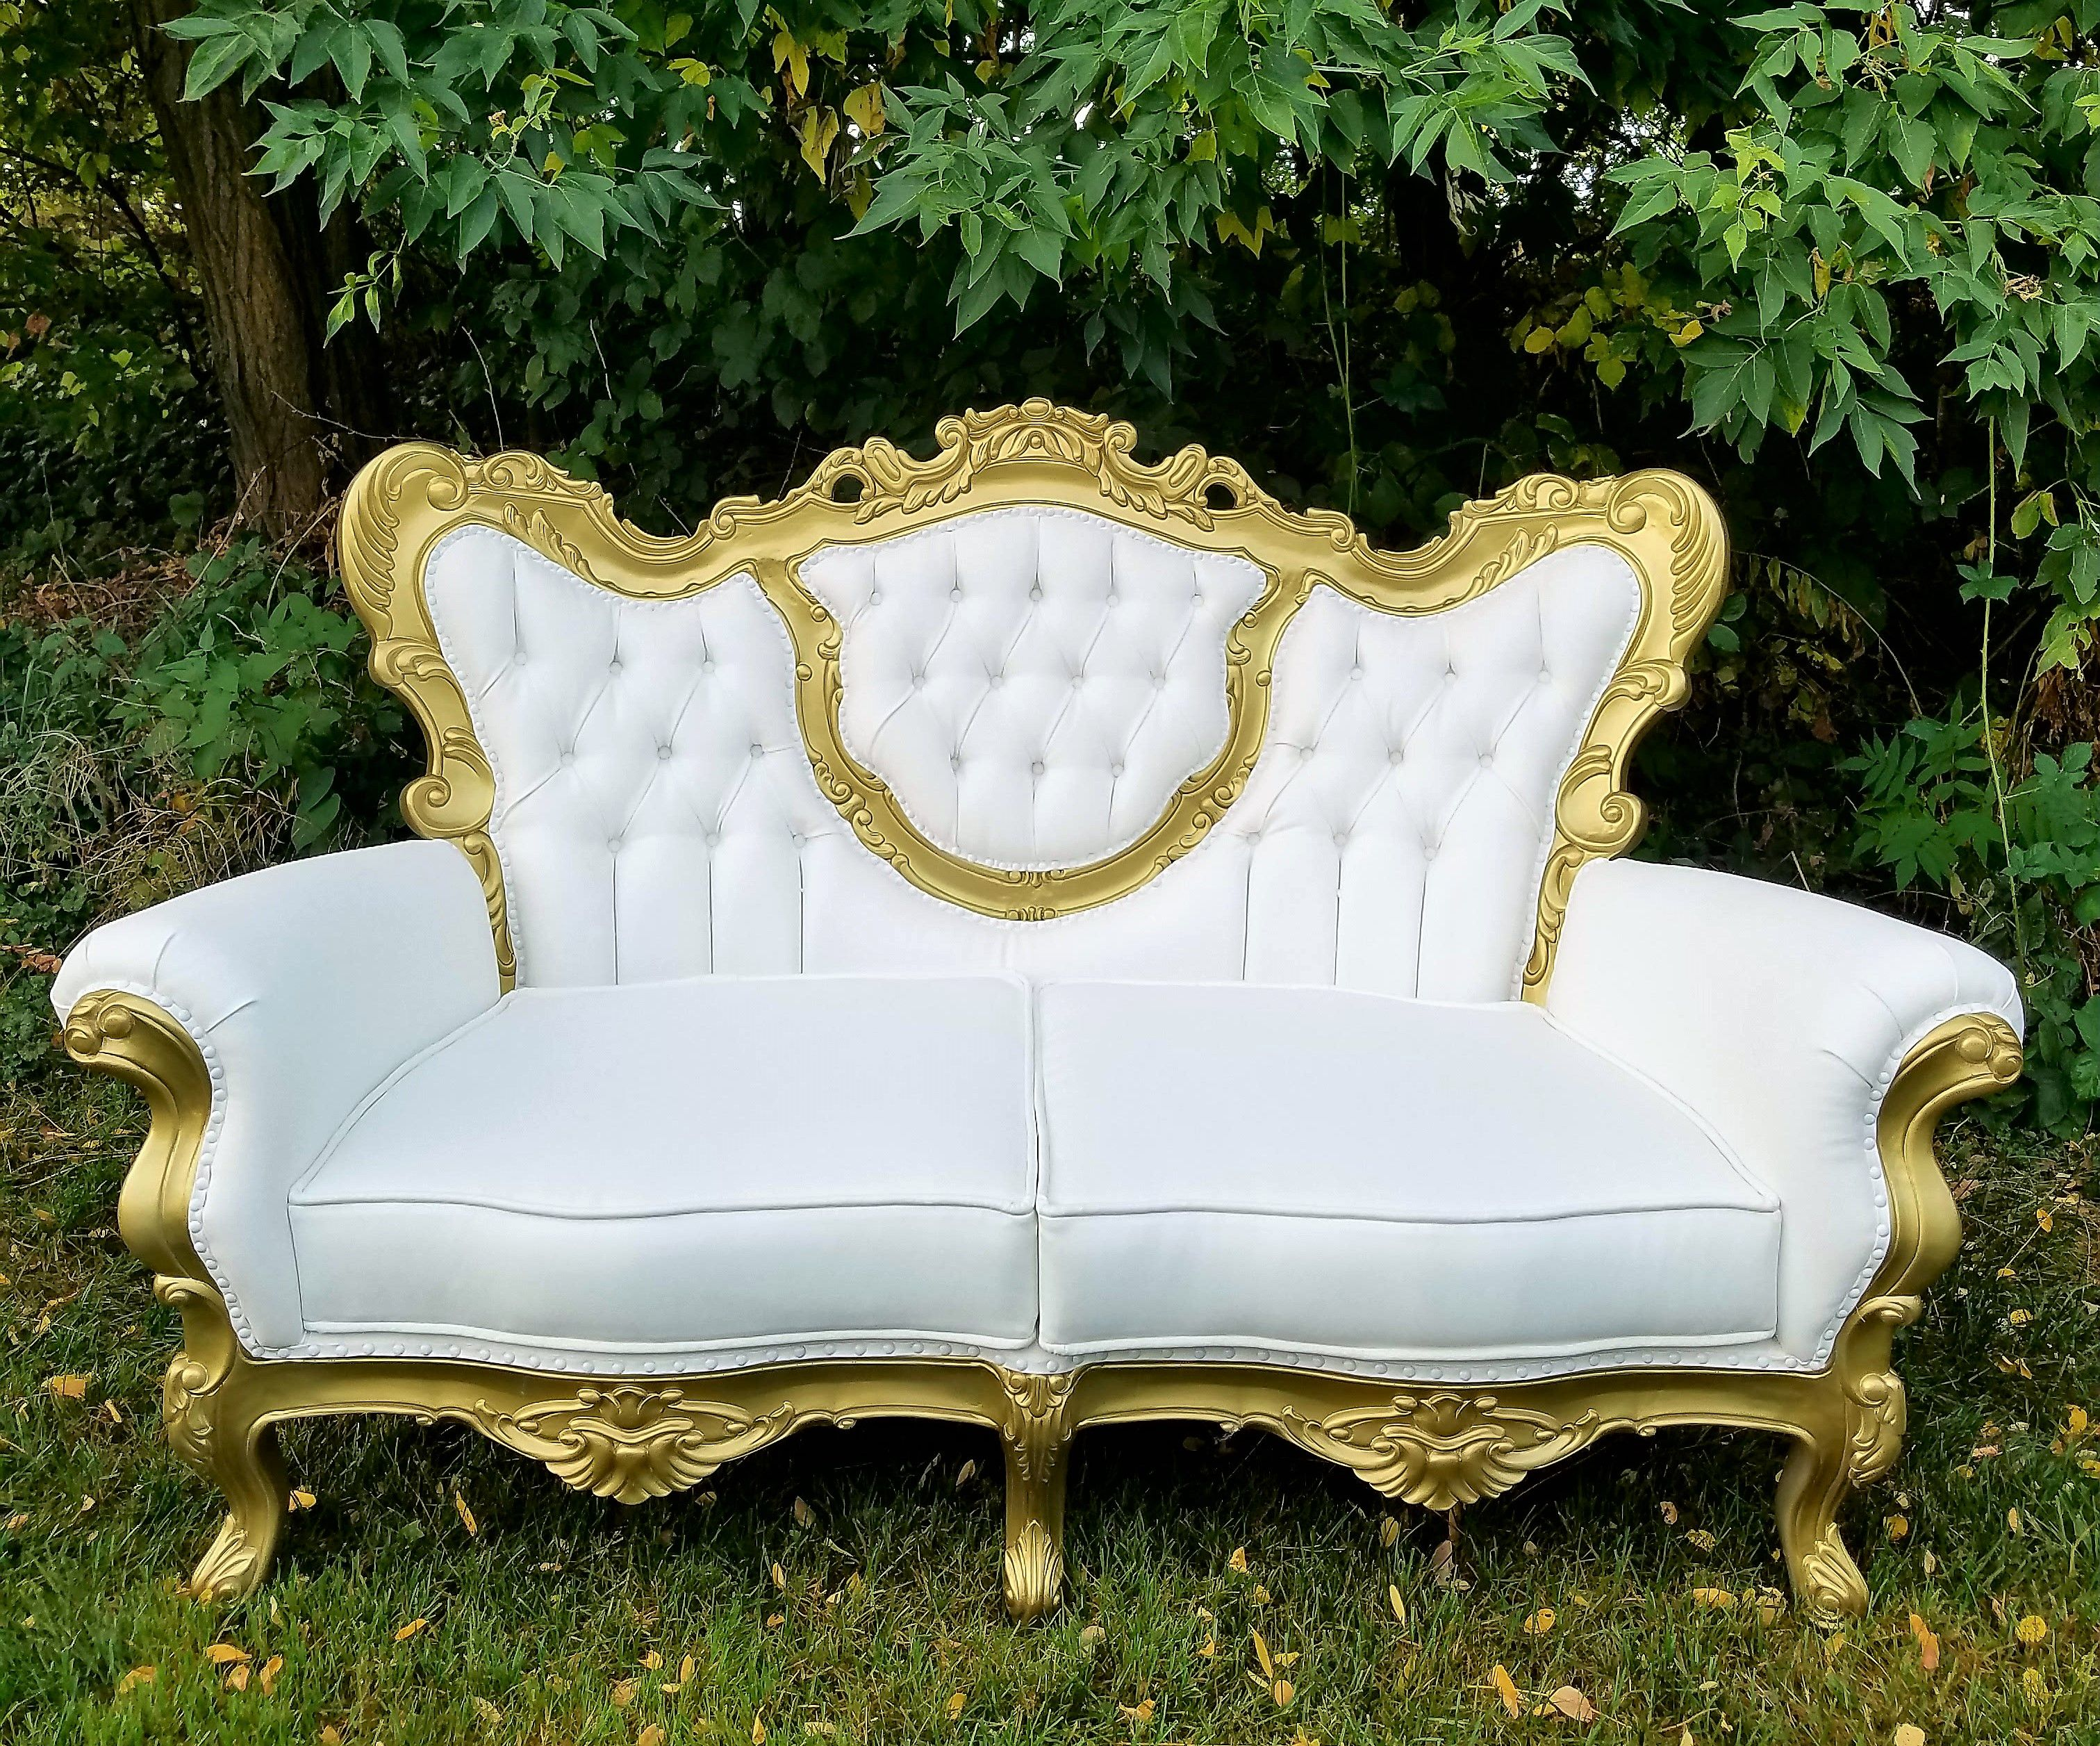 New to our furniture collection is our victorian style couch perfect for your fairy tale wedding